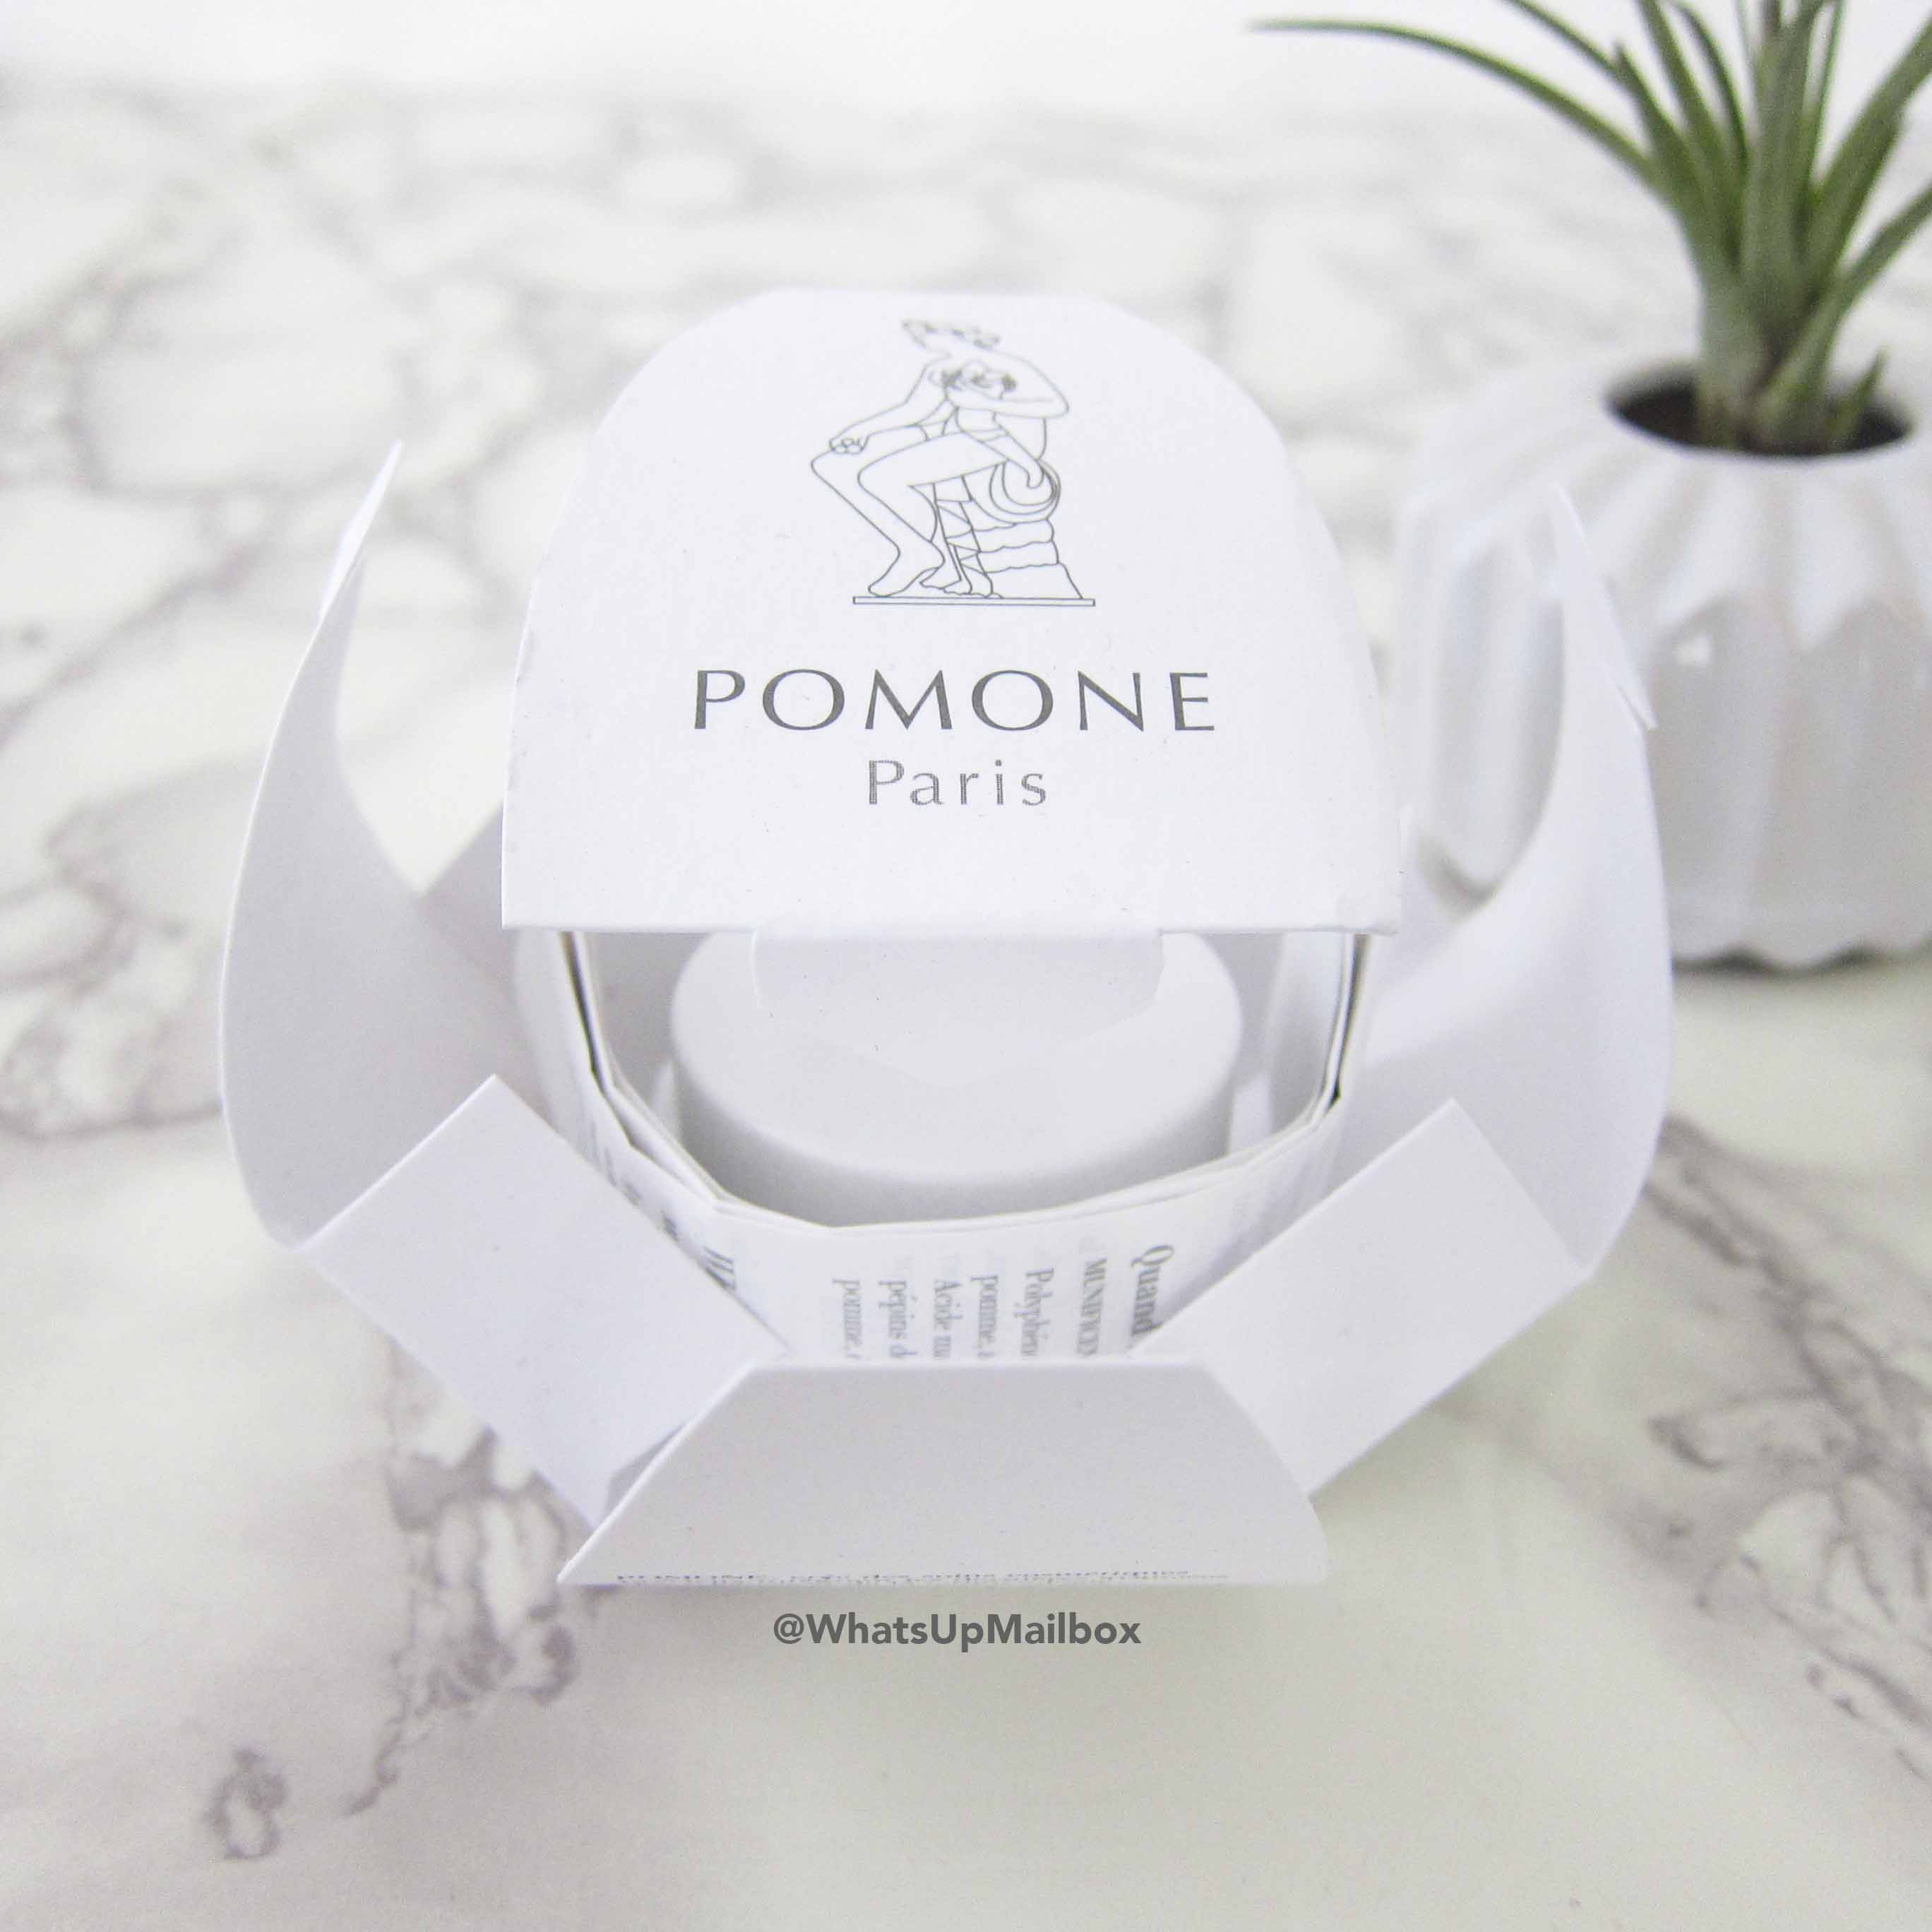 Oui Please Vol. 2.3 - Pomone Paris Munificence Creme Jour & Nuit